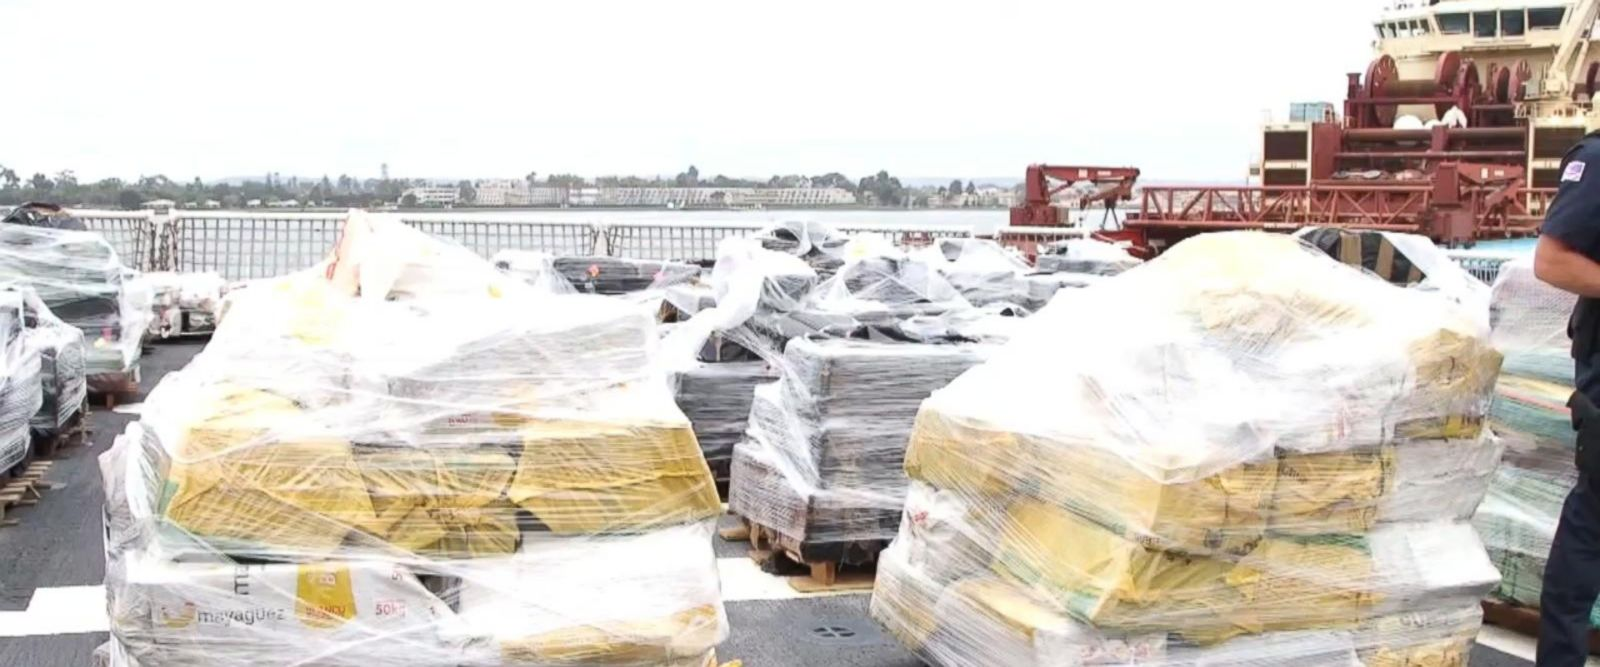 VIDEO: Record-breaking year in cocaine seizures for the Coast Guard